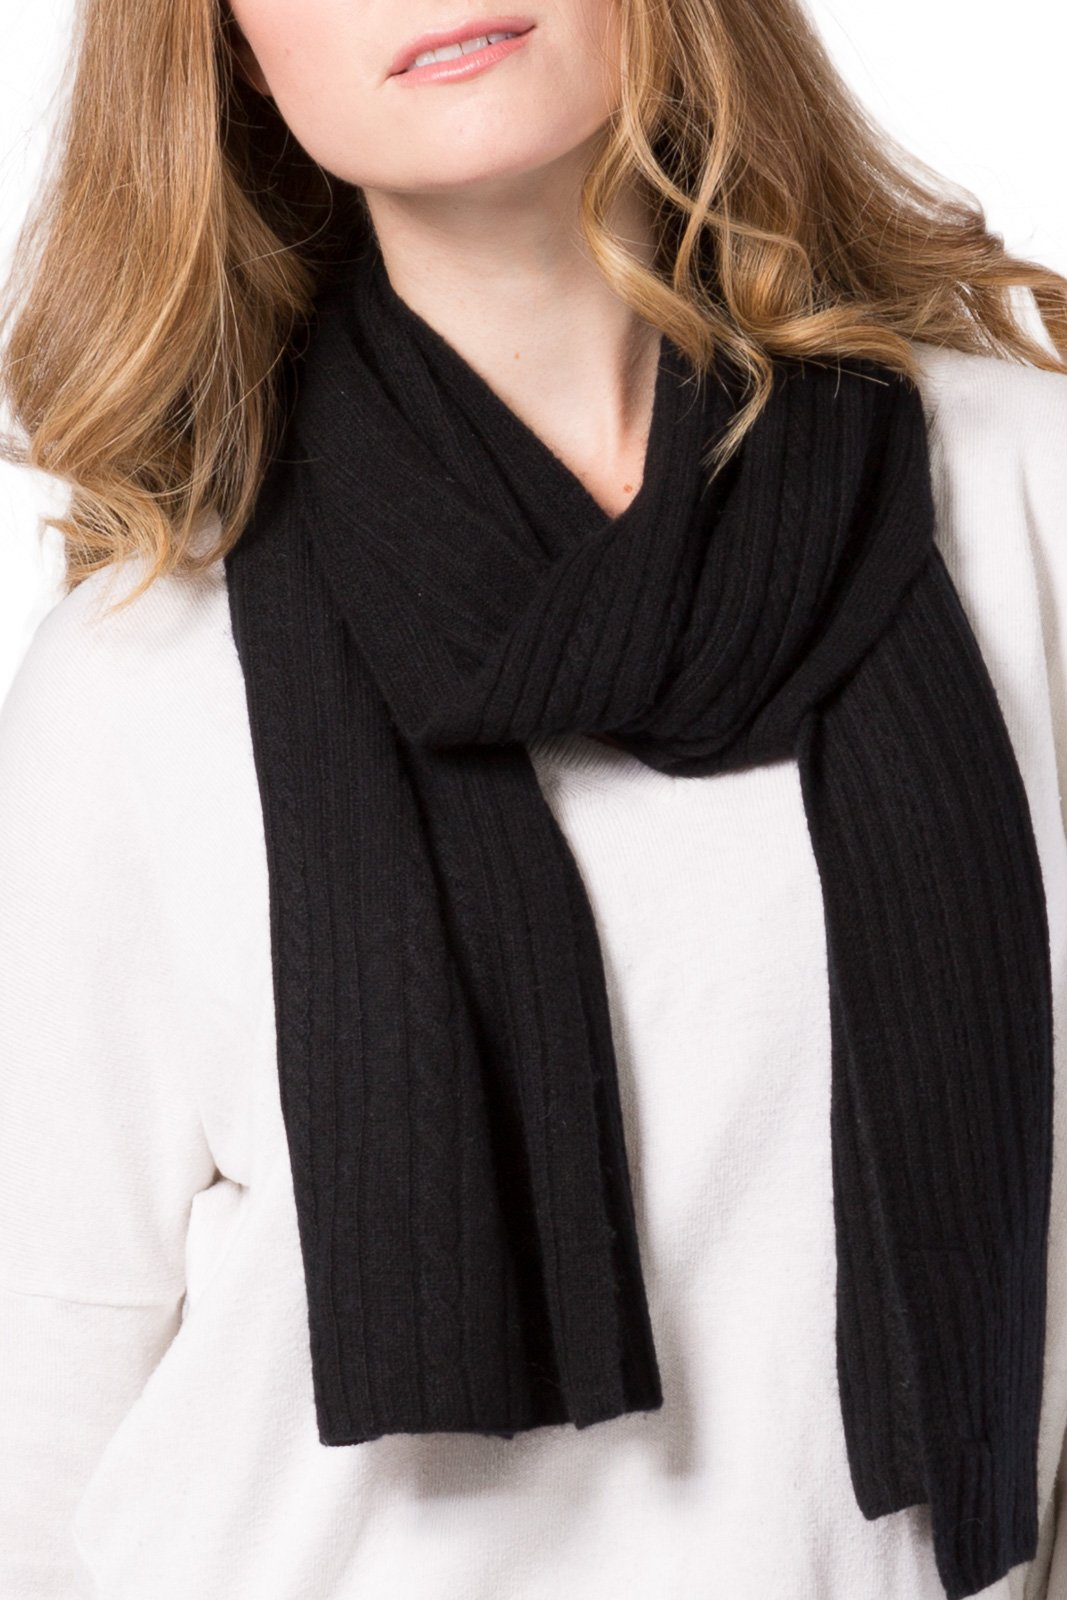 Fishers Finery Women's Cashmere Cable Knitted Scarf; Christmas Gift (Black) by Fishers Finery (Image #4)